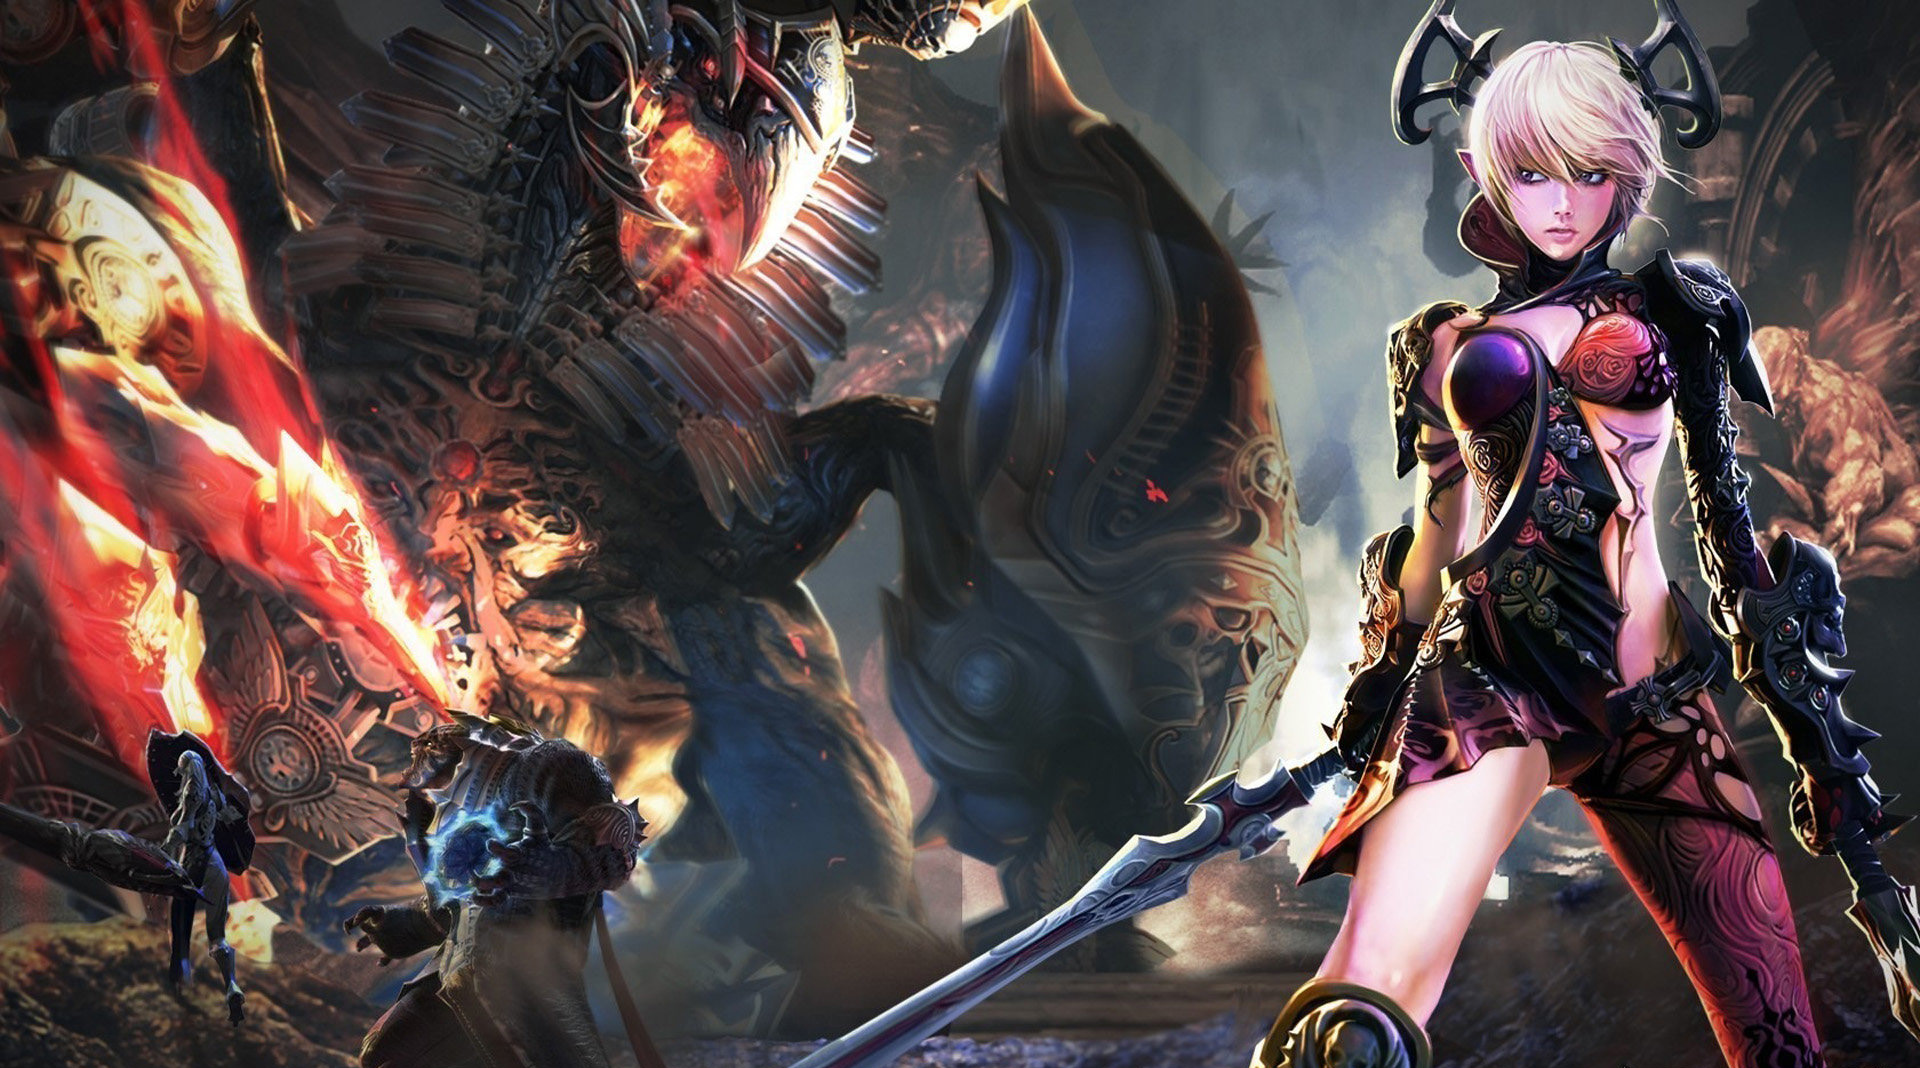 tera rising wallpaper - photo #29